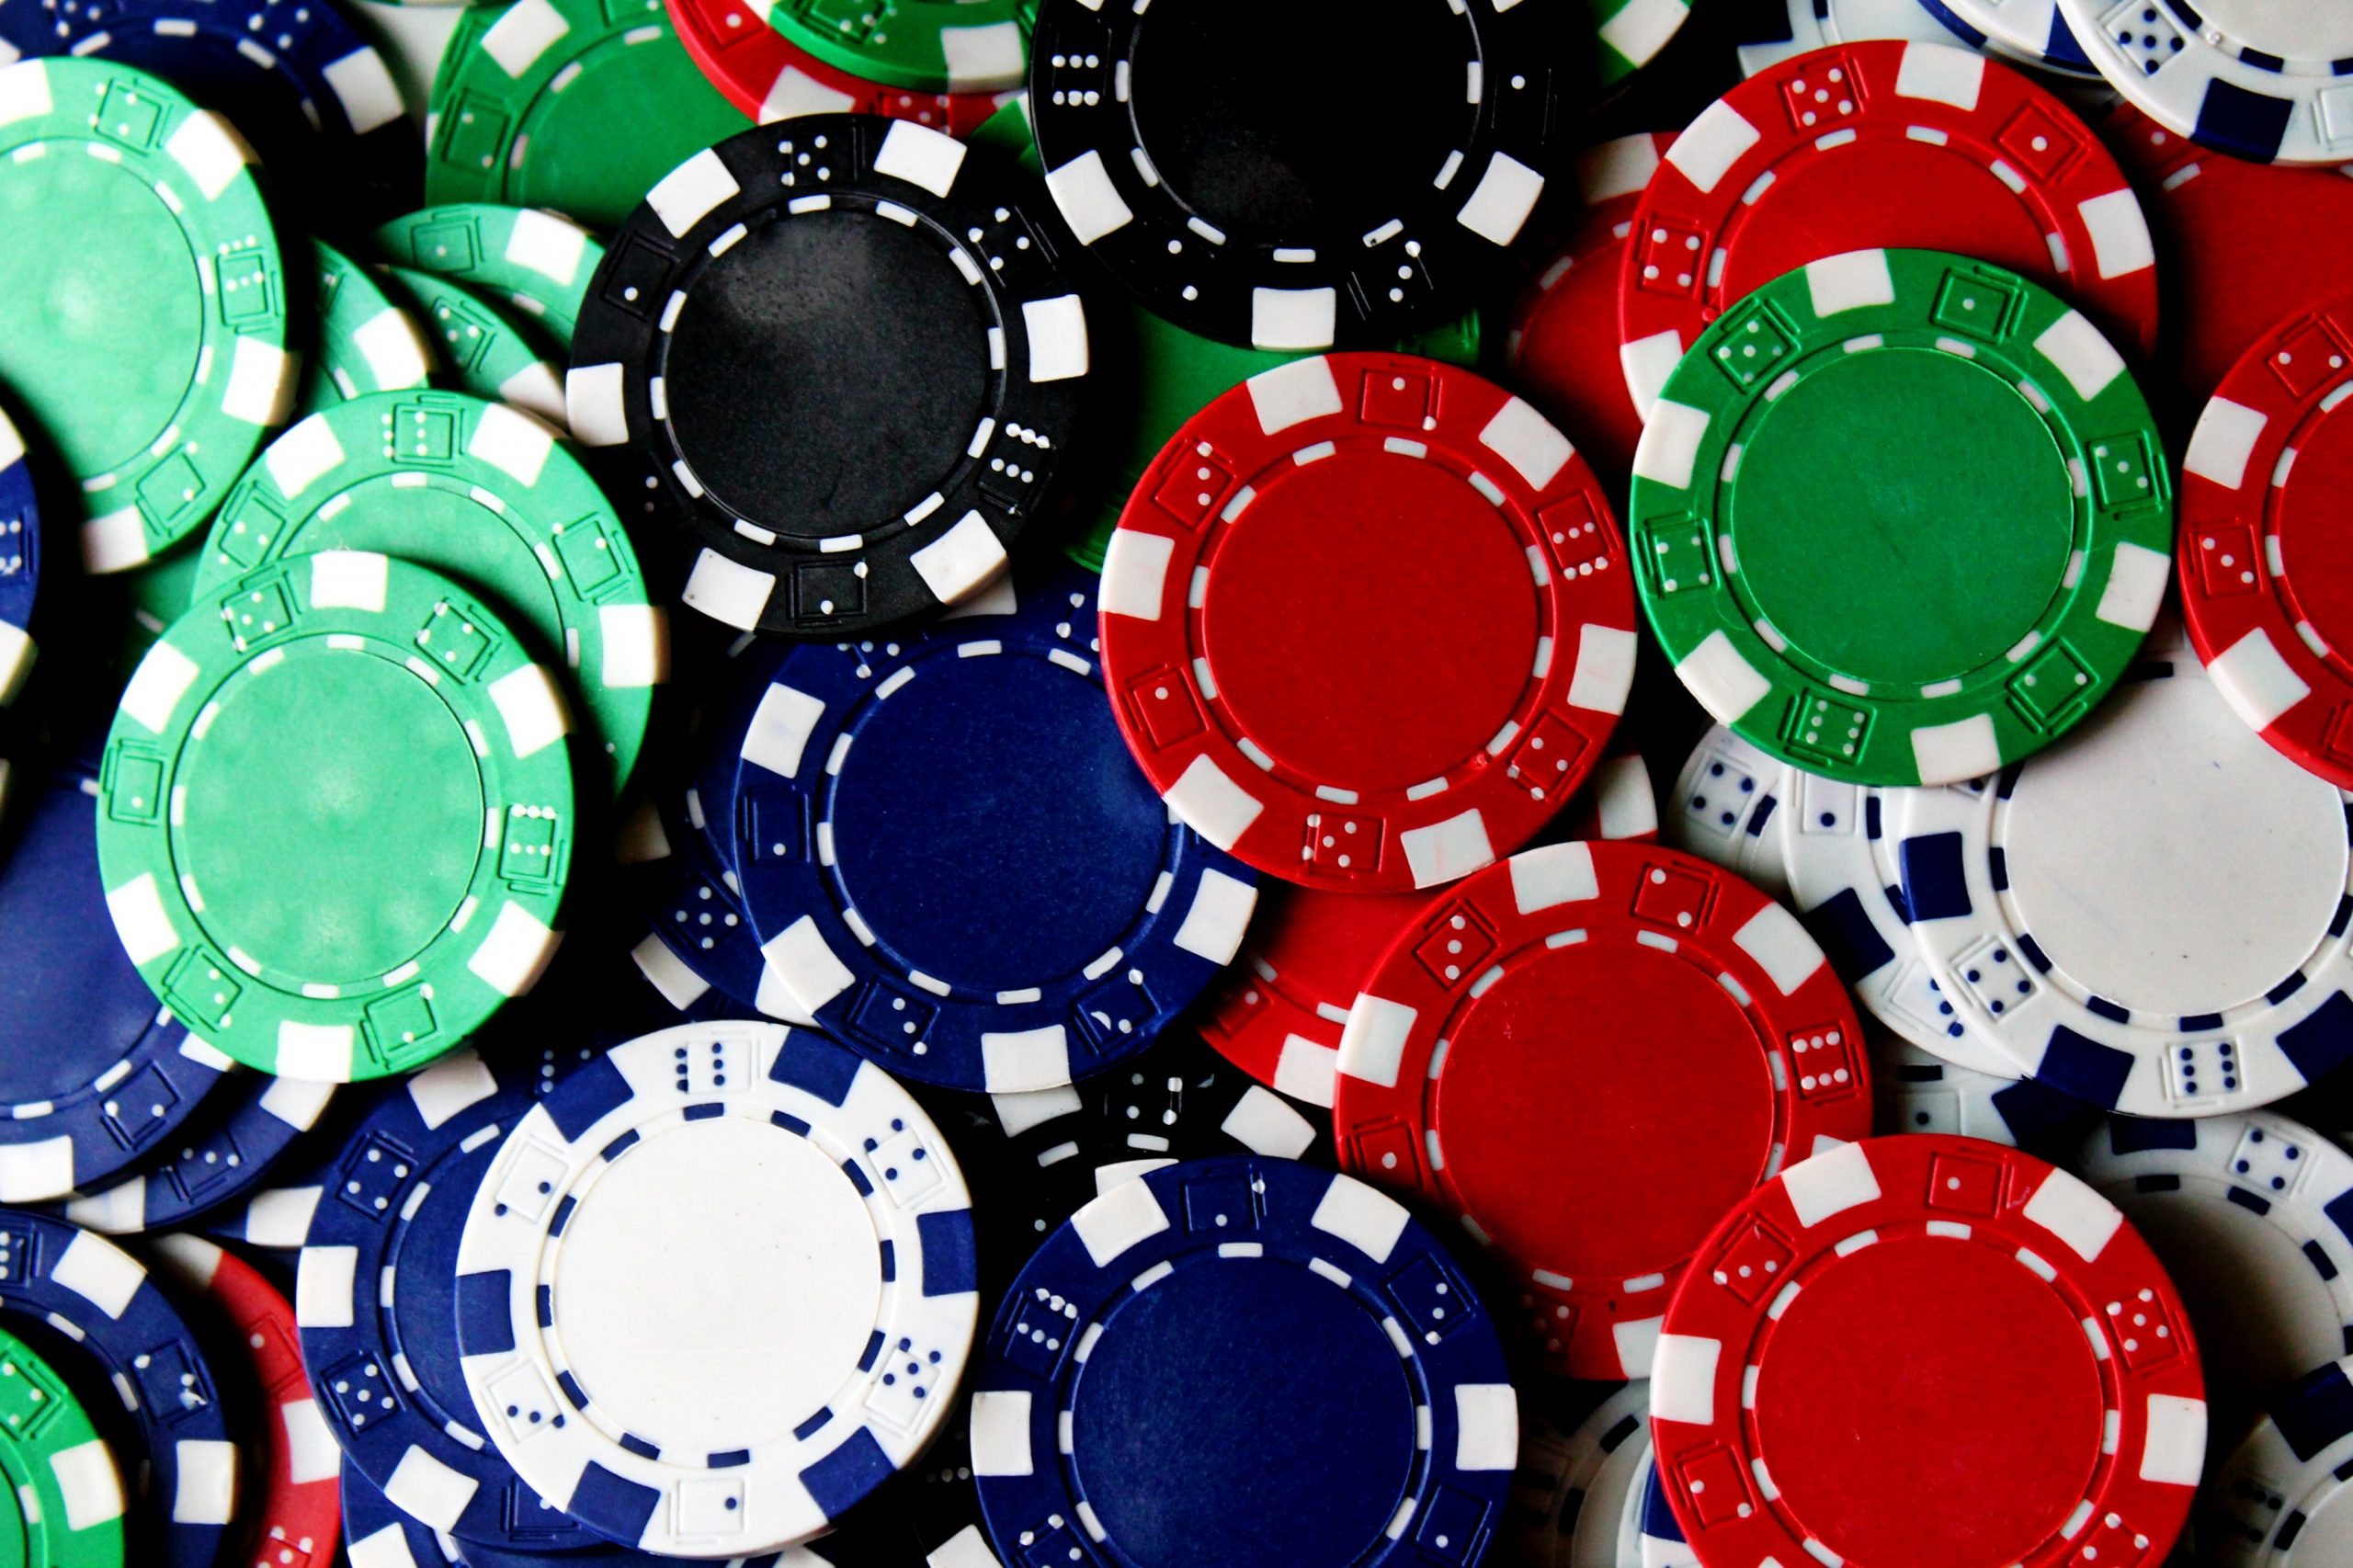 Gambling online pokers to earn more payouts